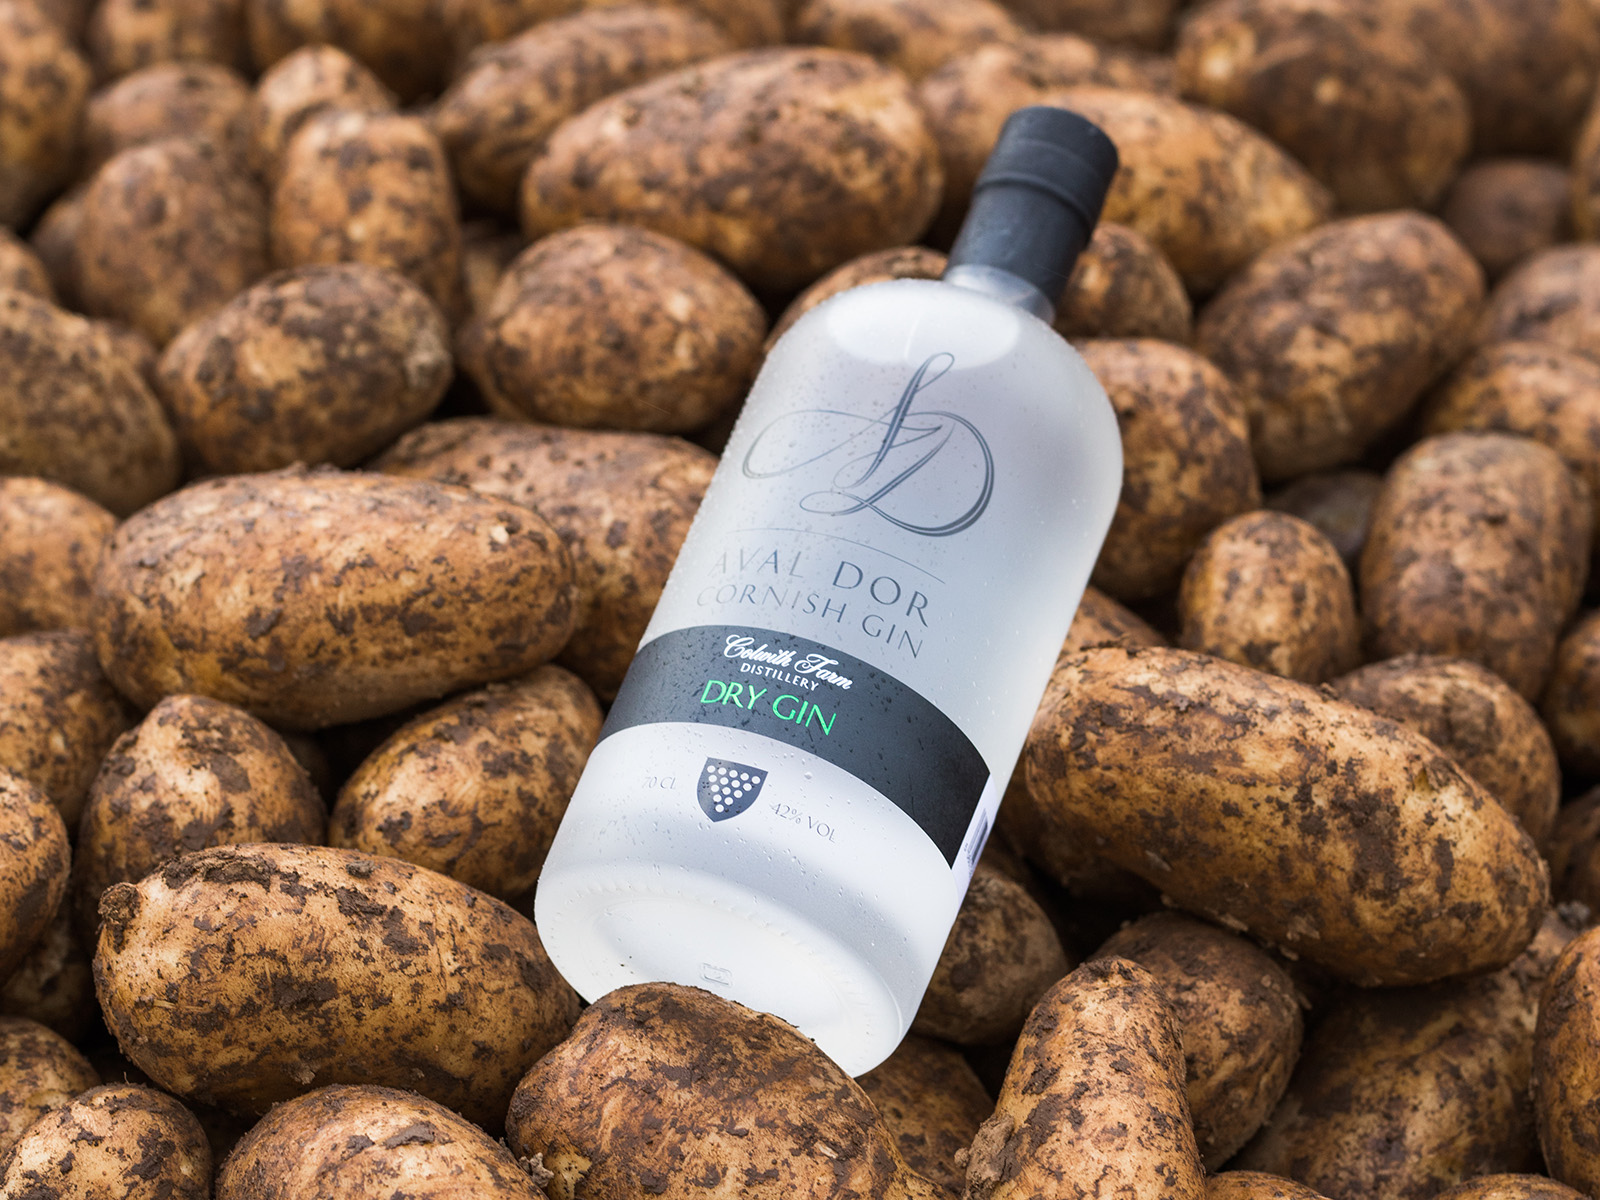 A bottle of Aval Dor Gin on a pile of potatoes